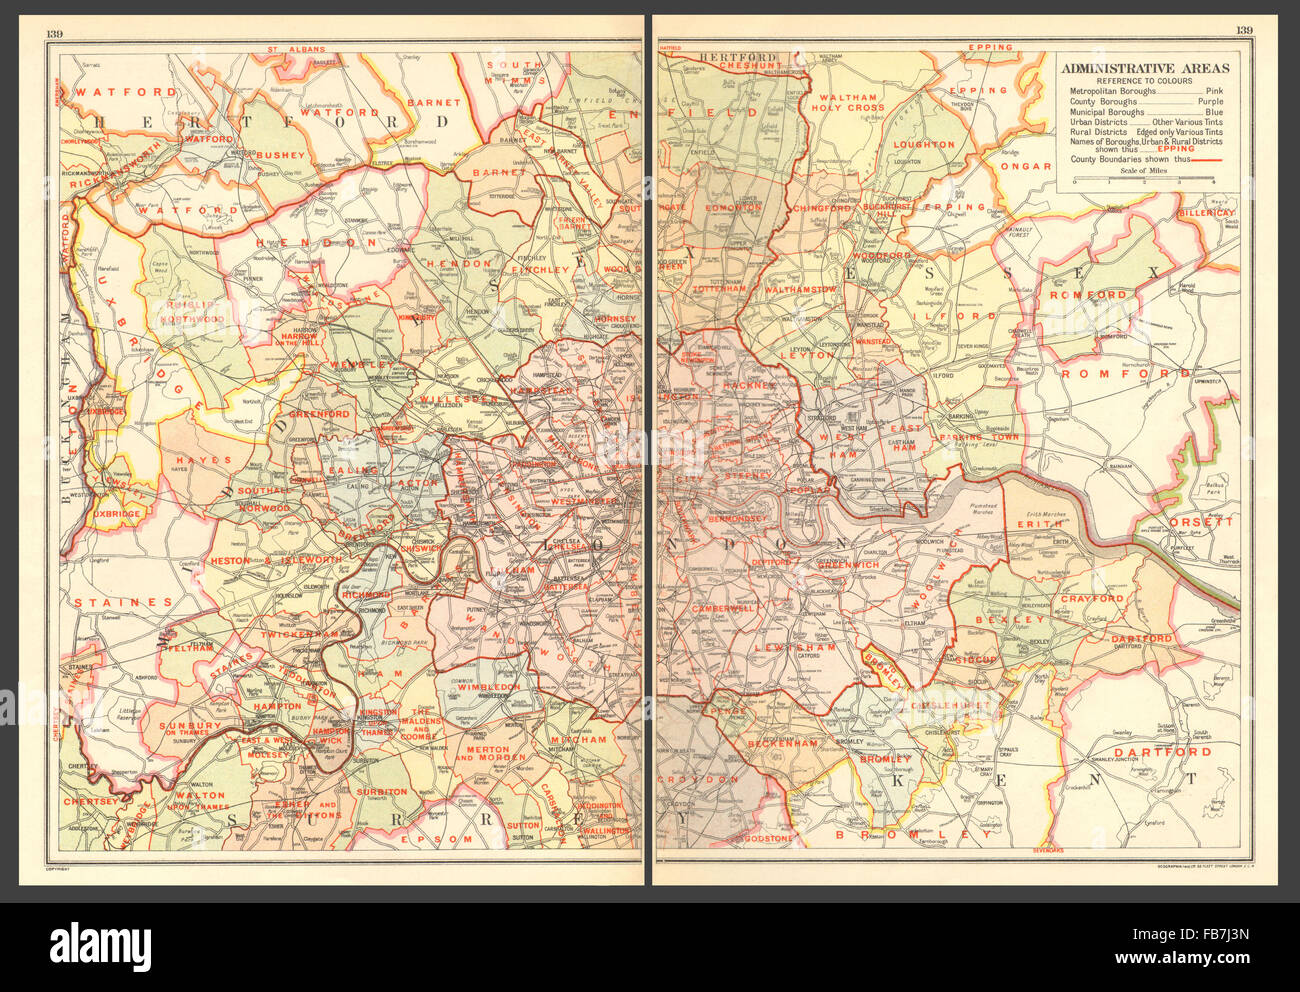 London Map Districts.London Administrative Areas Boroughs Districts 1923 Vintage Map